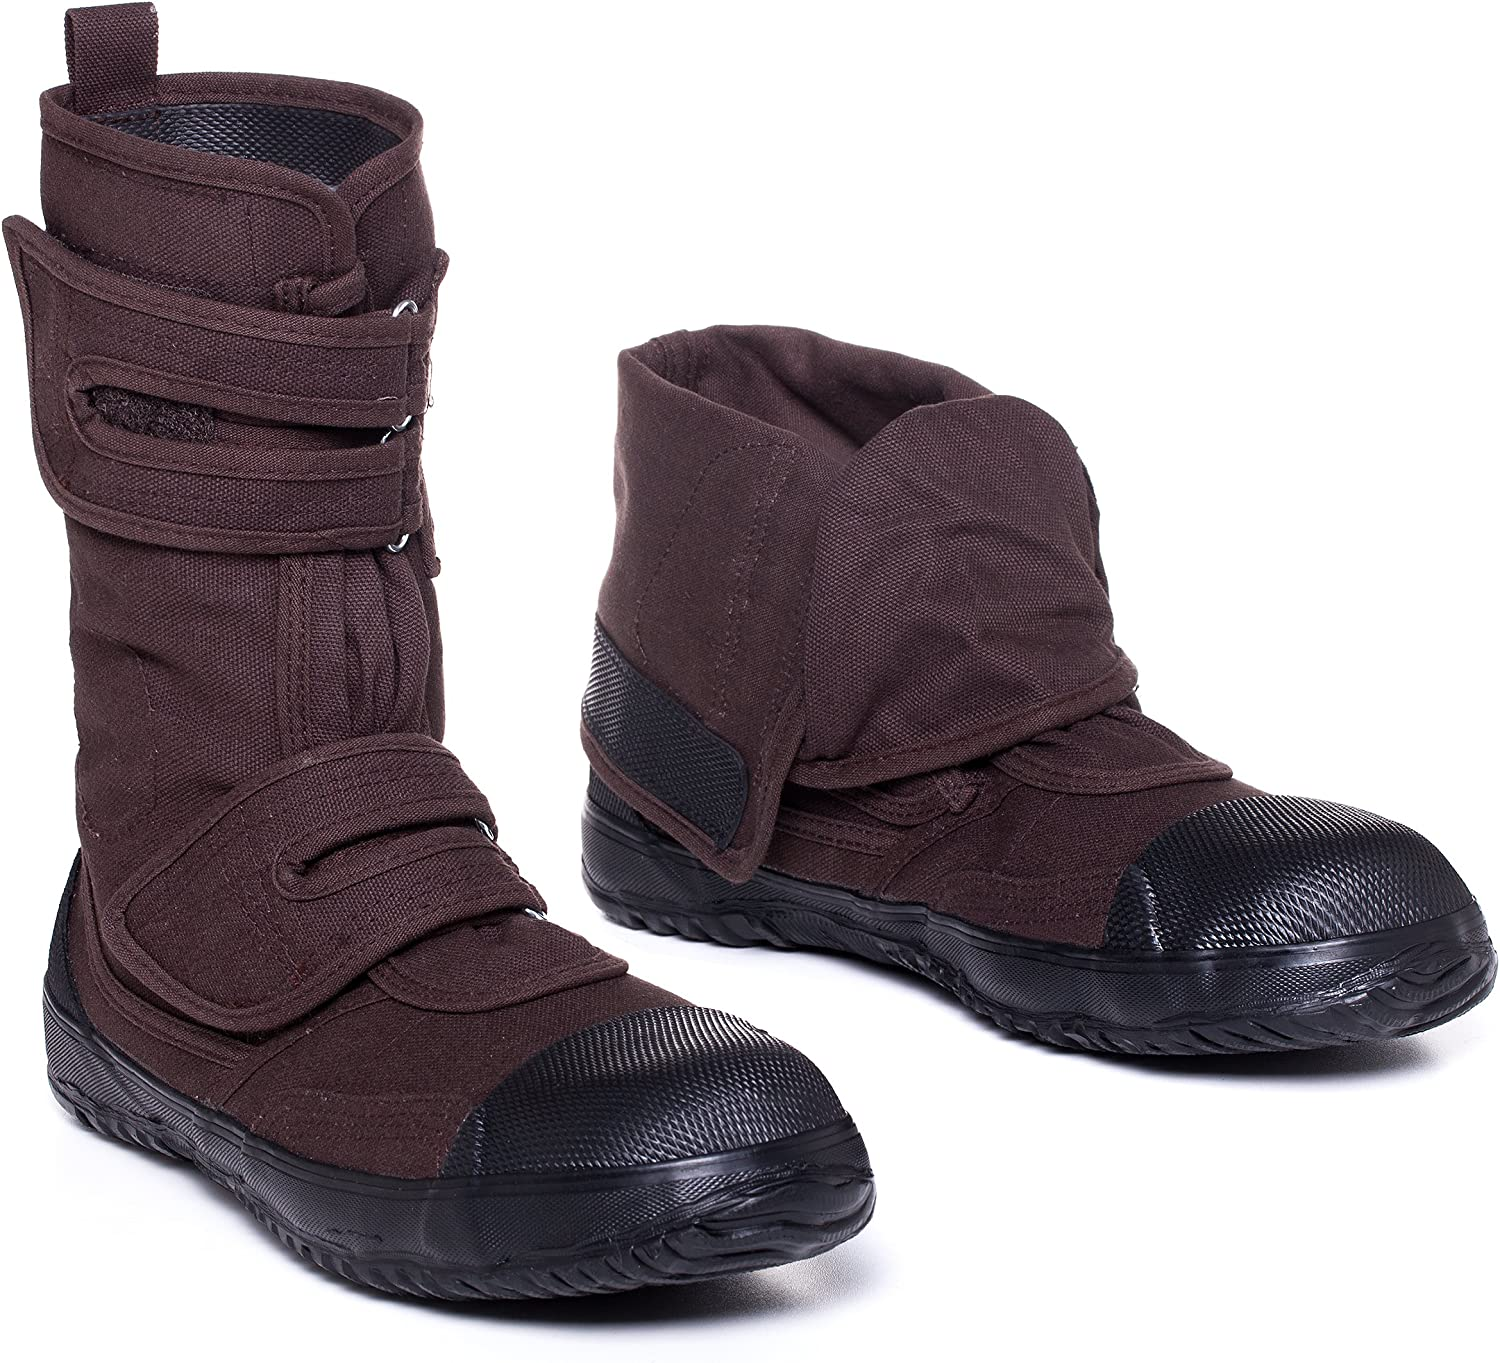 Fugu SaMe Japanese Vegan & EcoFriendly MidCalf Boots with Rubber Sole